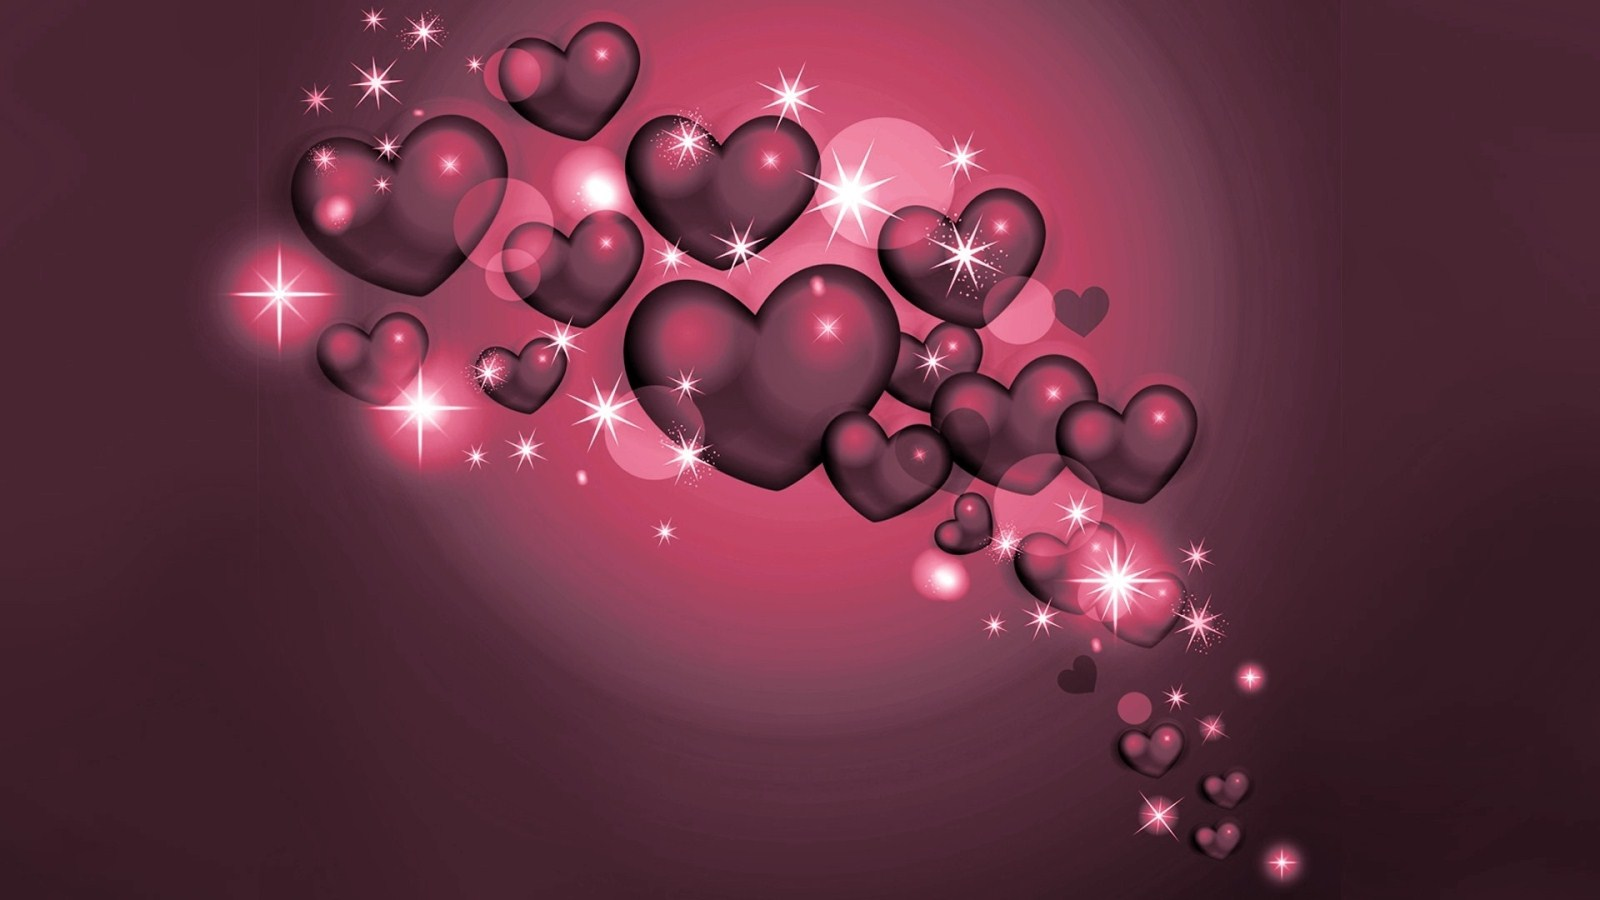 Love Images Hd 3d Wallpaper : 3D Love Wallpaper - WallpaperSafari